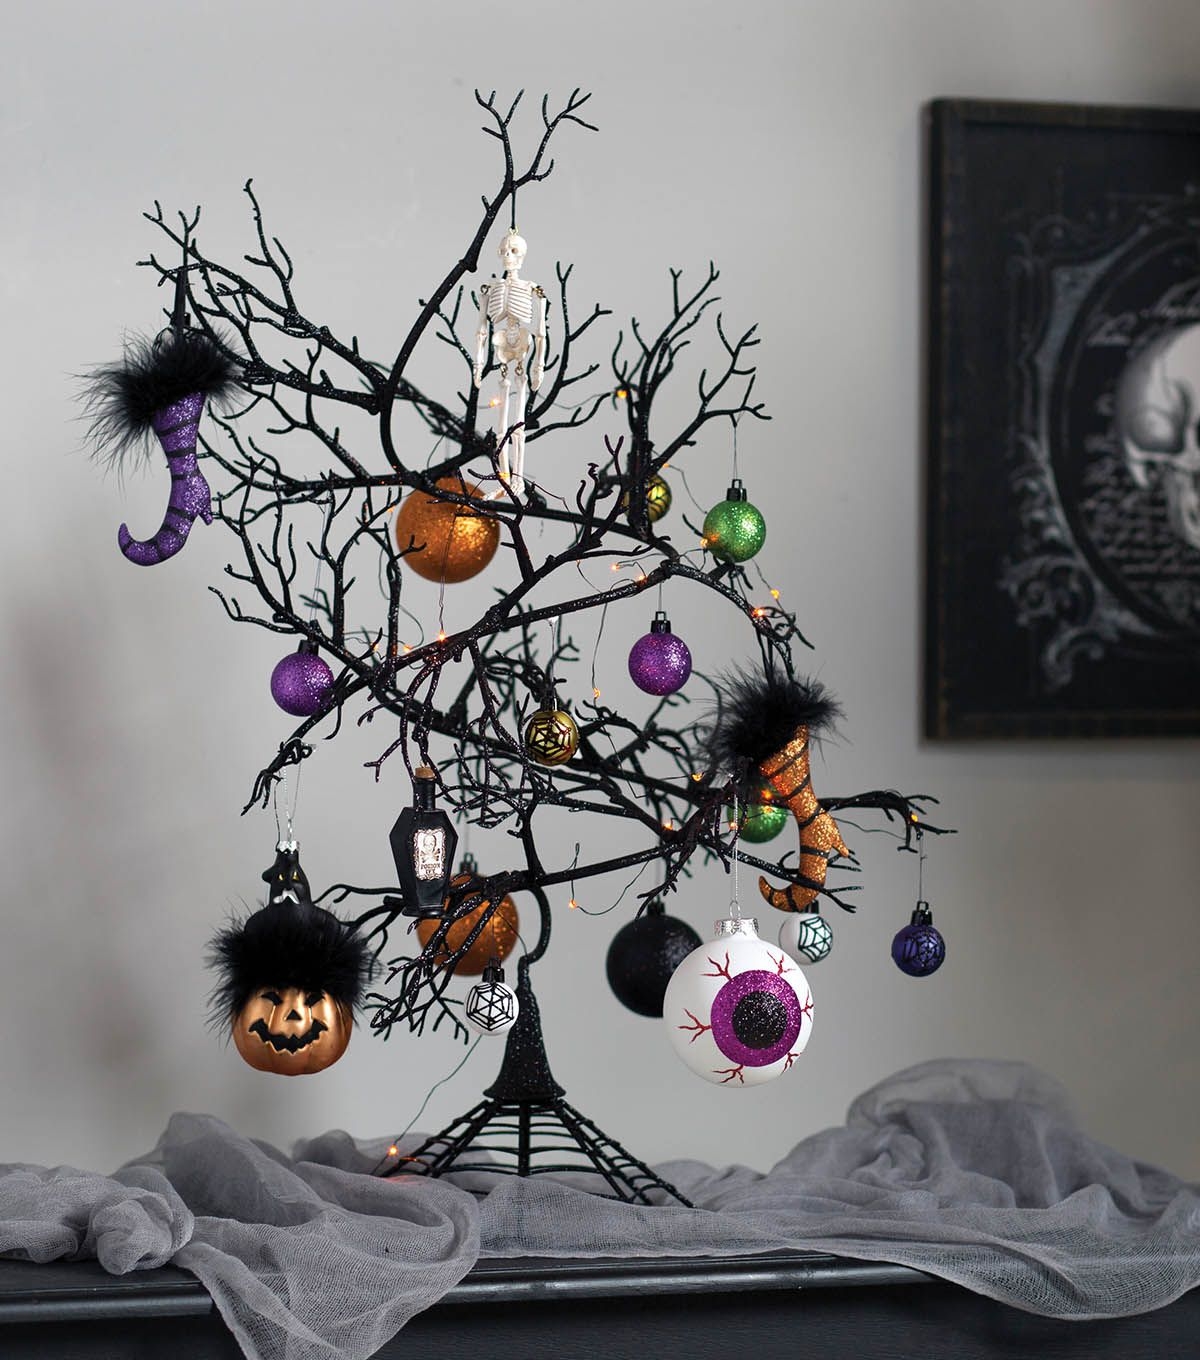 How To Make A Halloween Ornament Tree Halloween Ornaments Tree Halloween Ornaments Halloween Tree Decorations